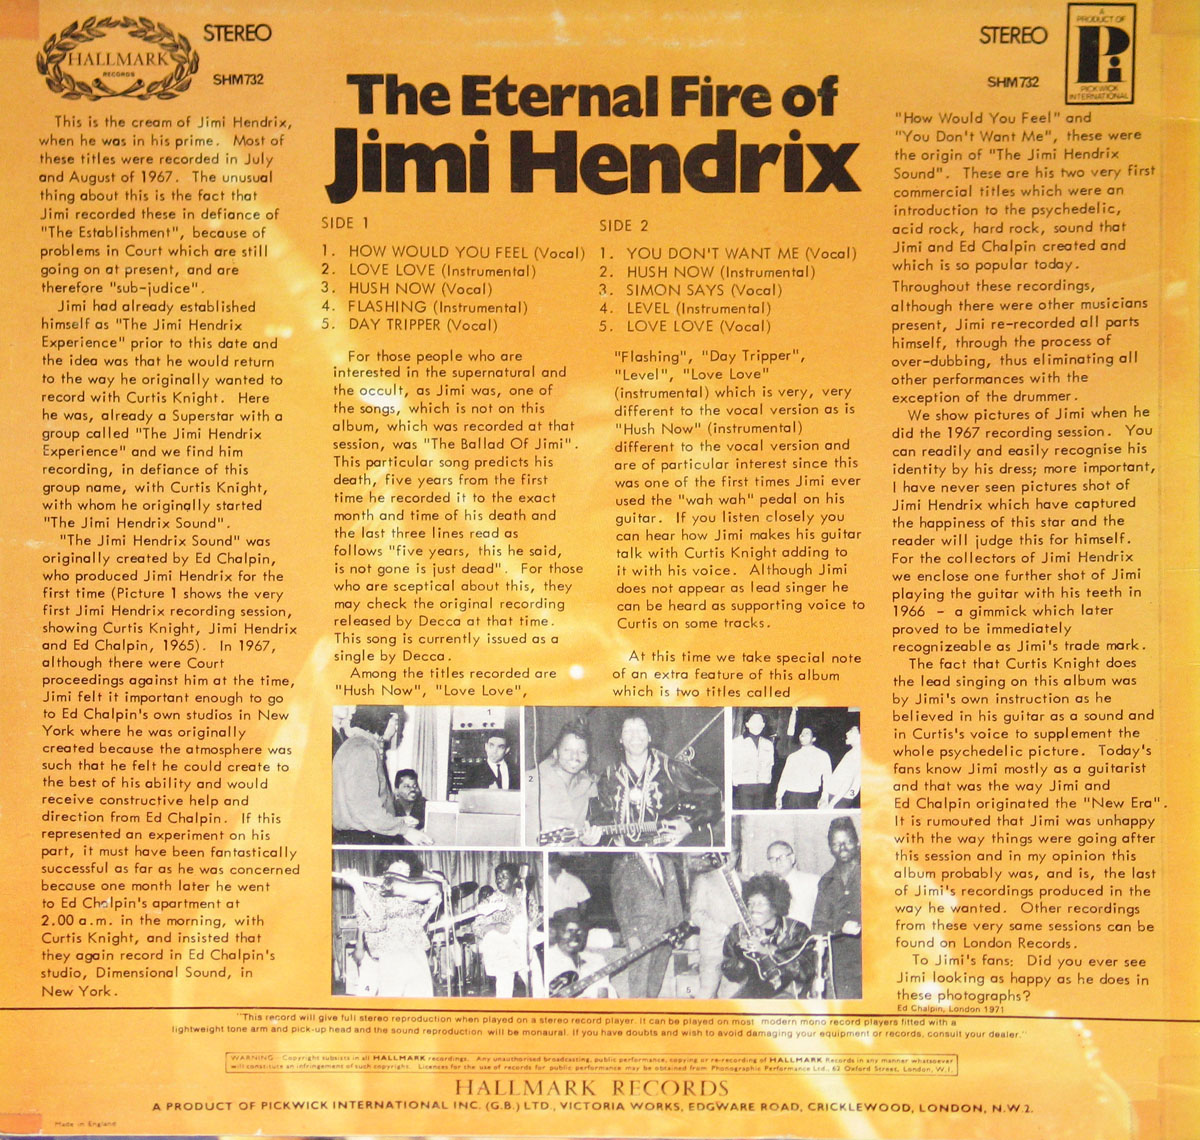 Extensive Liner notes on the history of Jimi Hendrix working for Curtis Knight